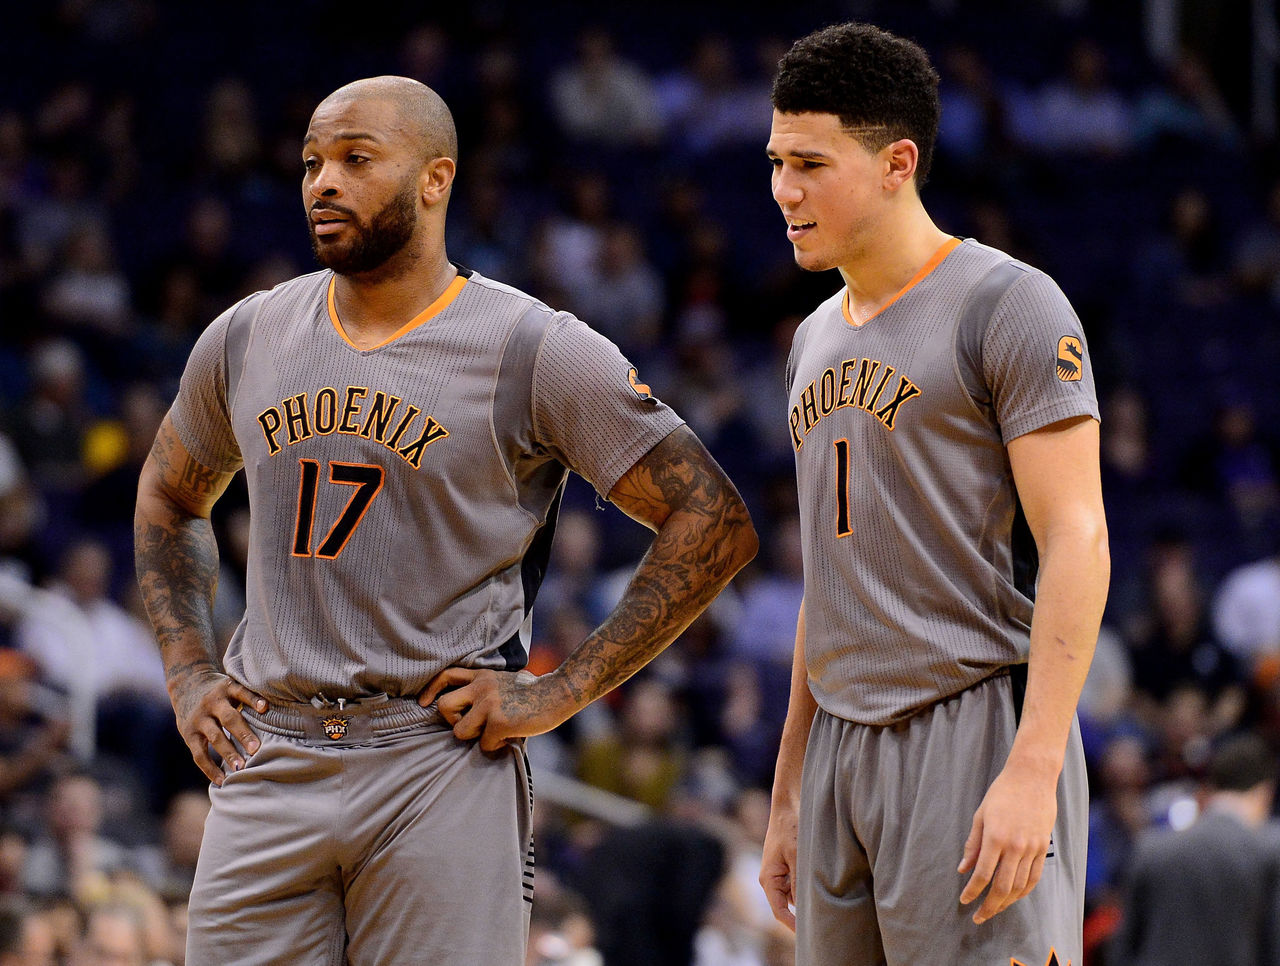 Cropped 2017 02 14t034049z 72669454 nocid rtrmadp 3 nba new orleans pelicans at phoenix suns